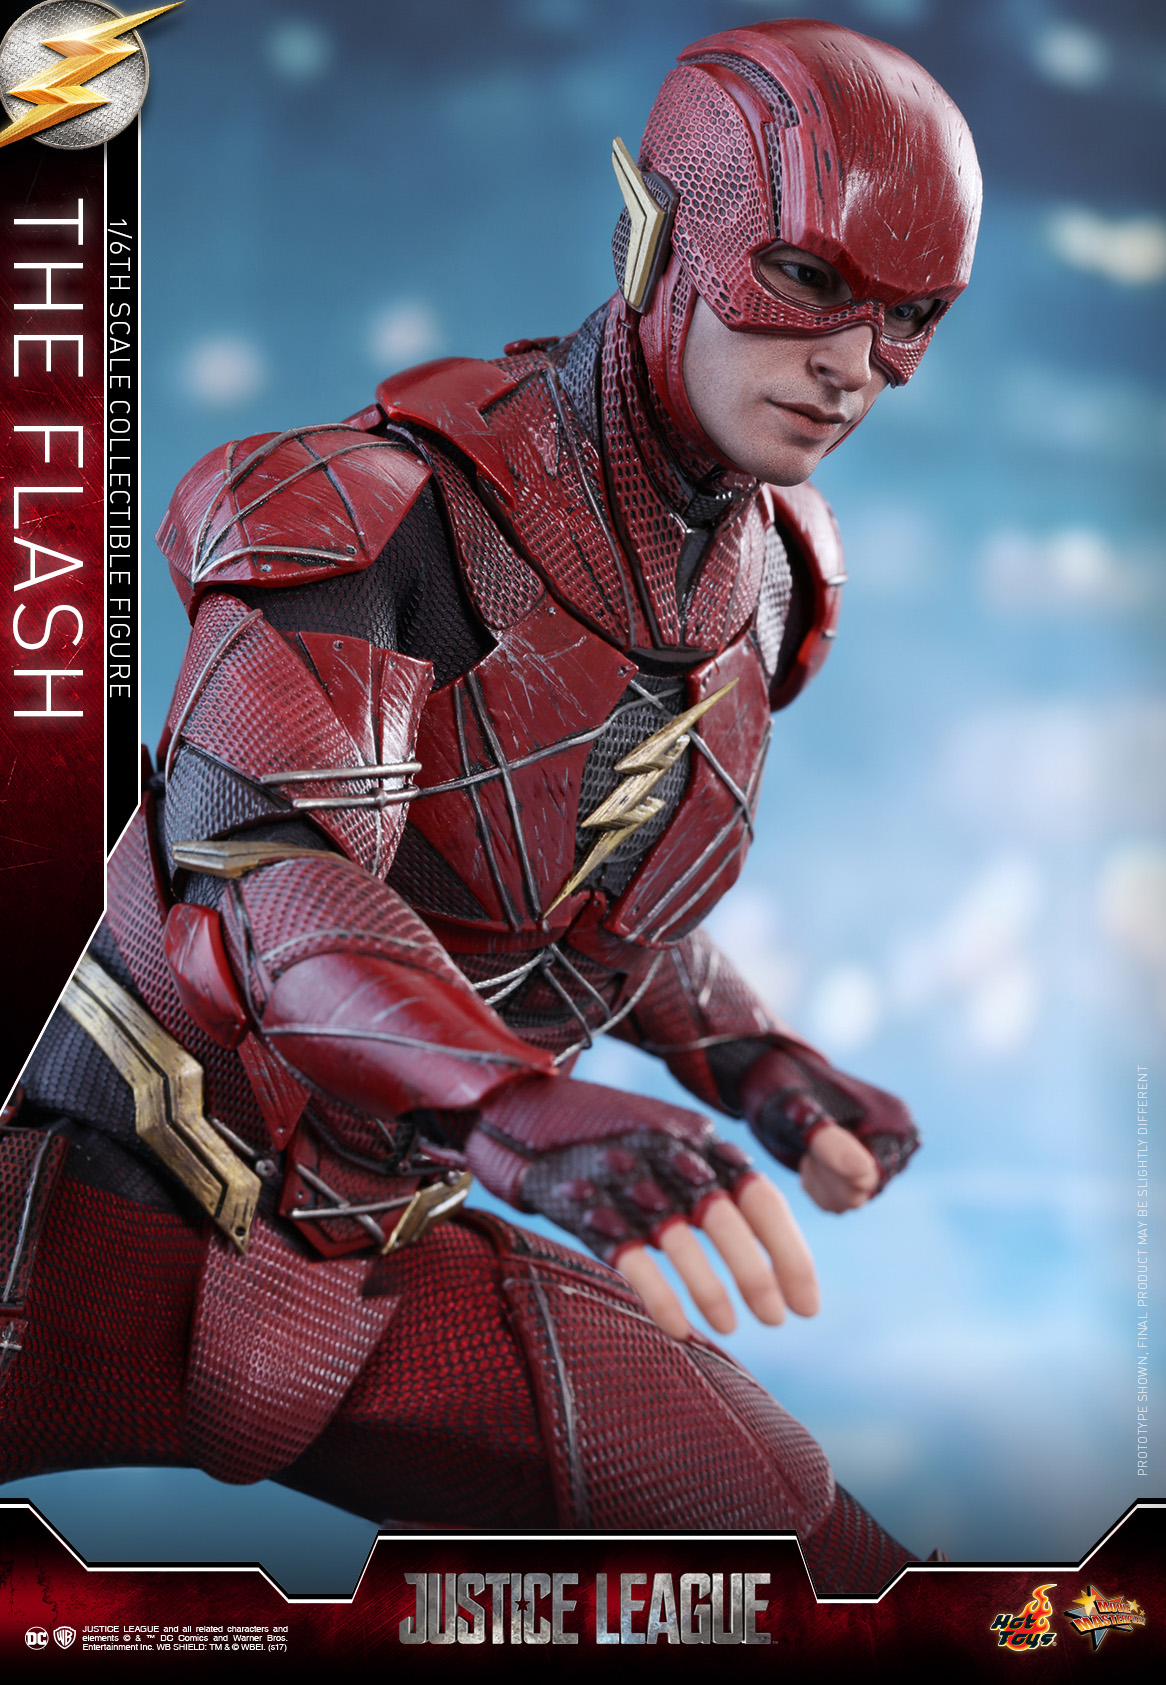 Hot Toys - Justice League - The Flash Collectible Figure_PR04.jpg